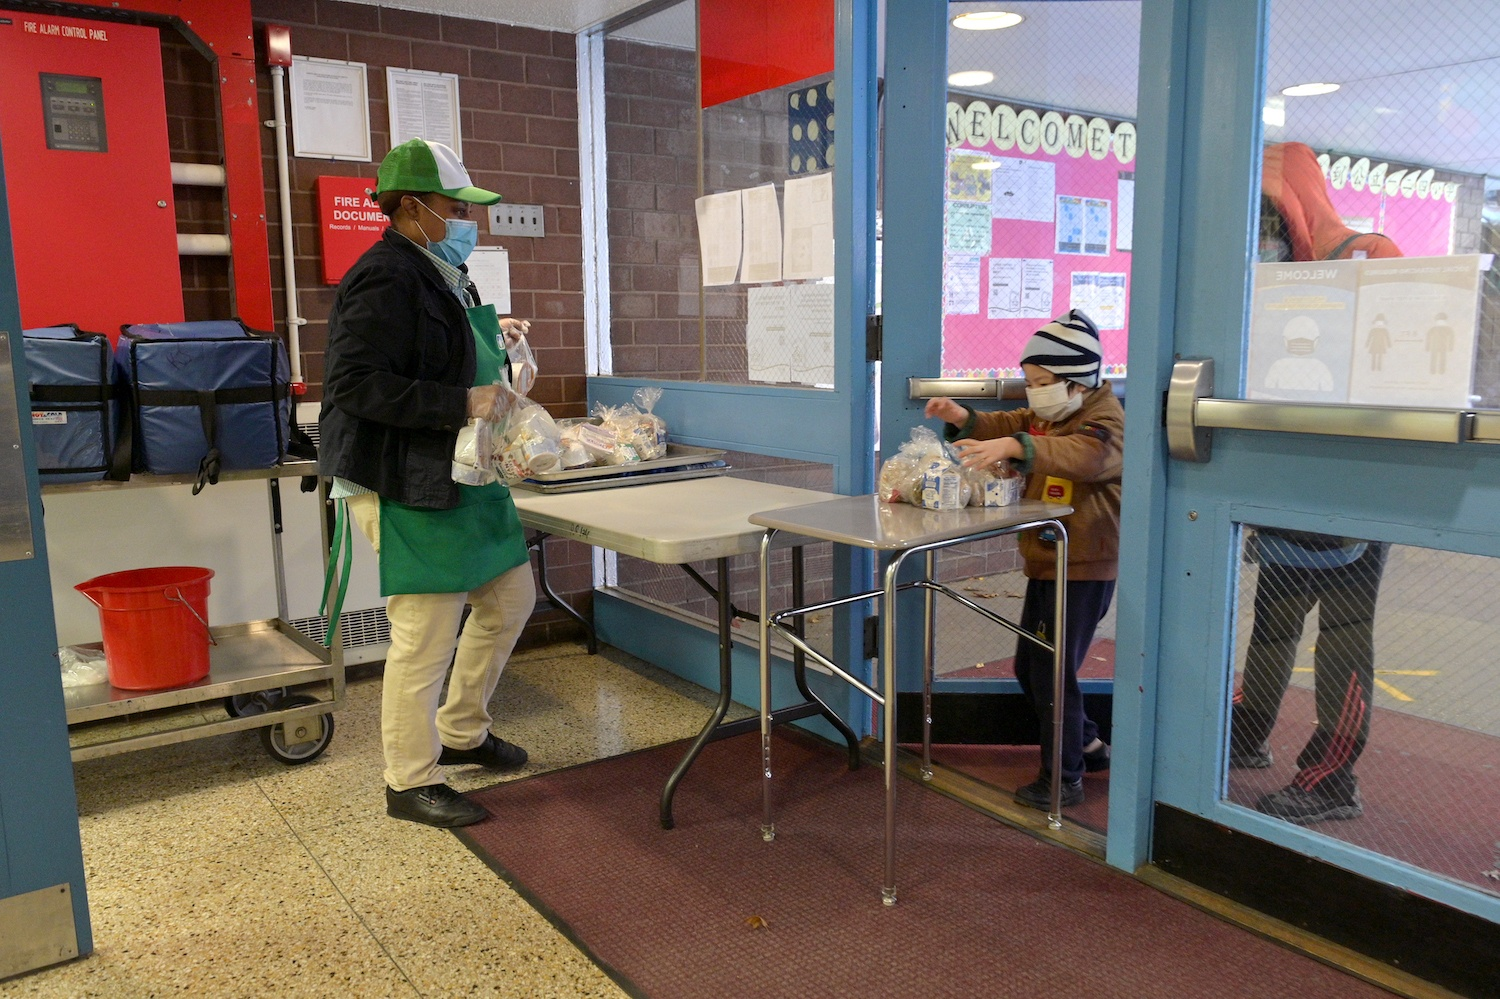 A student chaperoned by an adult picks up a meal to go on November 19, 2020 at Yung Wing School P.S. 124 in New York City.